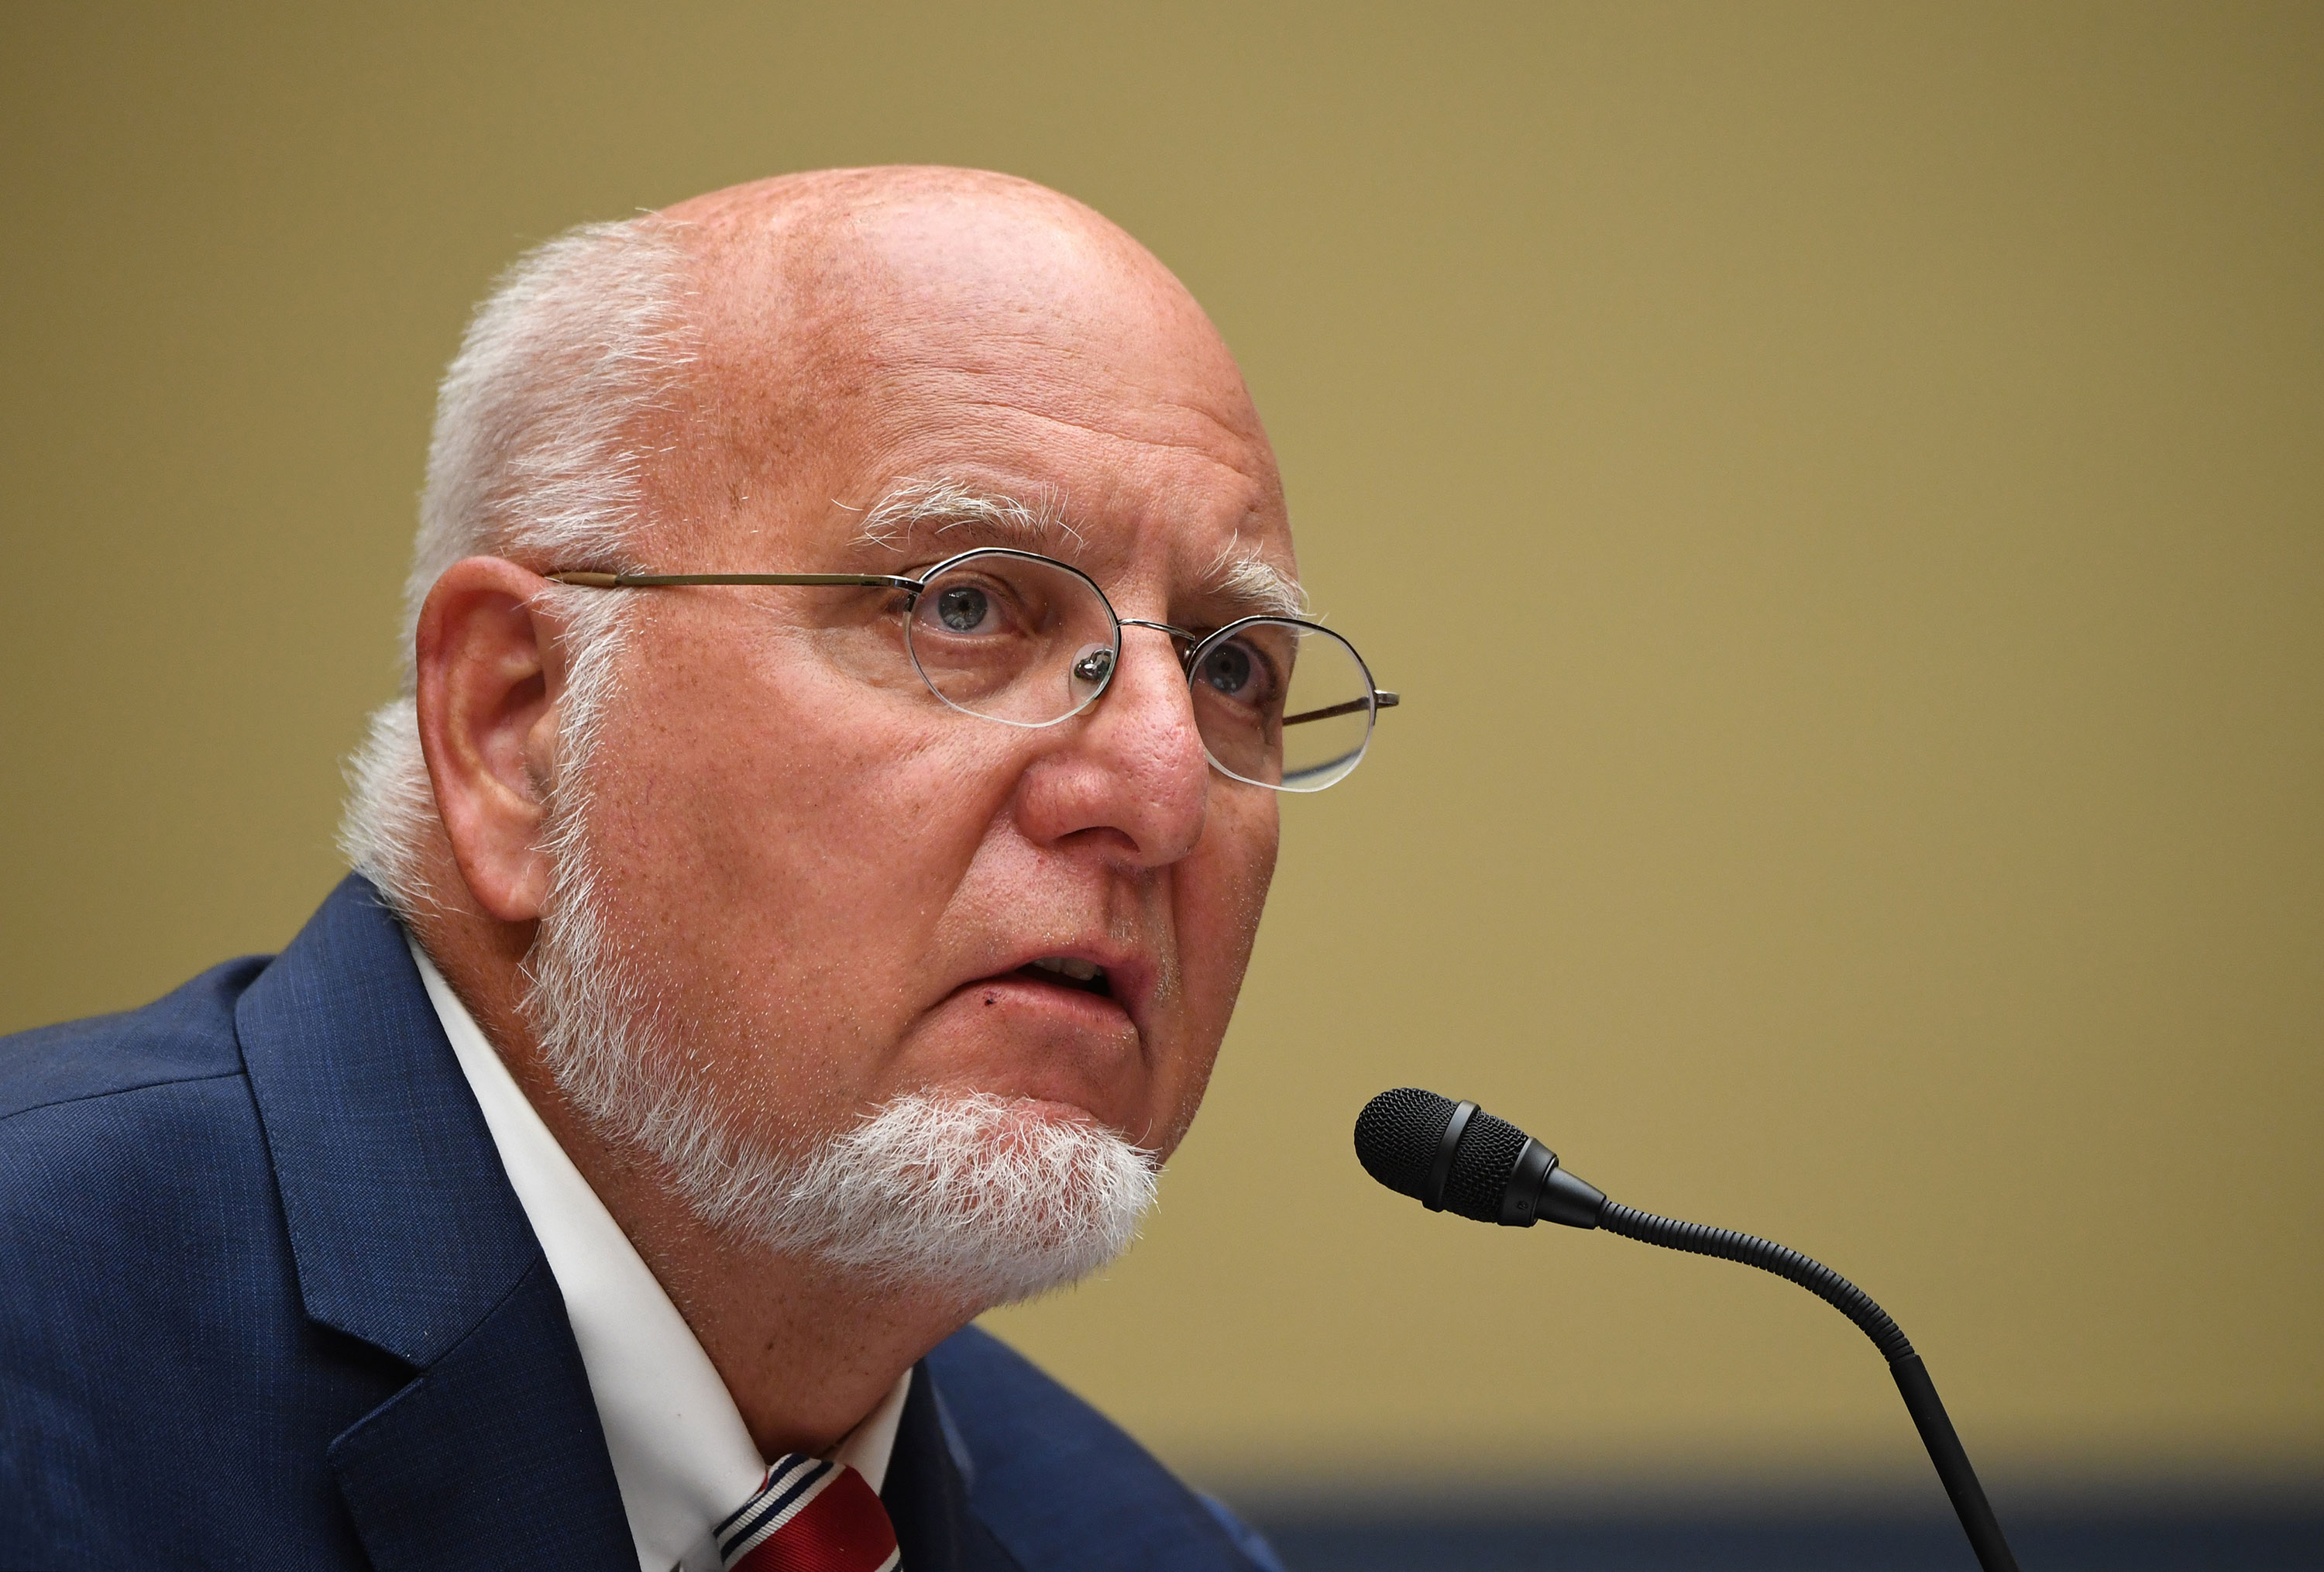 CDC Director Dr. Robert Redfield testifies at a House Subcommittee on the Coronavirus Crisis hearing on Capitol Hill on July 31 in Washington, D.C.